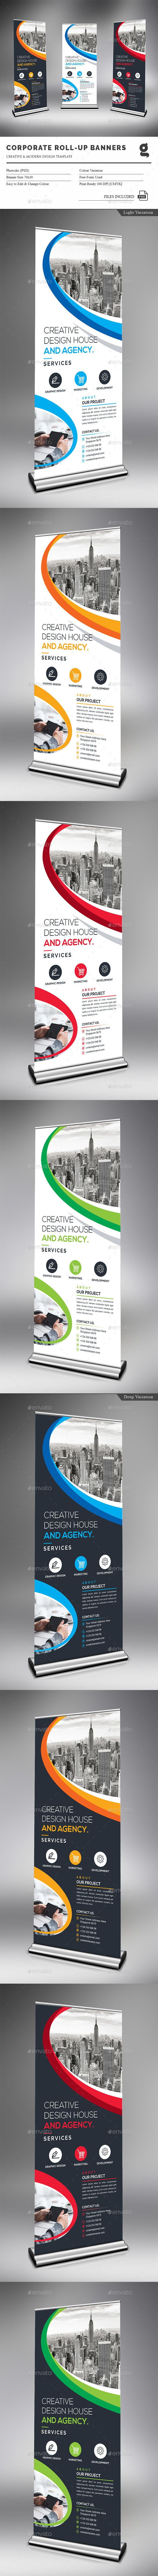 Corporate Rollup Banner Template PSD. Download here: http://graphicriver.net/item/corporate-rollup-banner/15454917?ref=ksioks